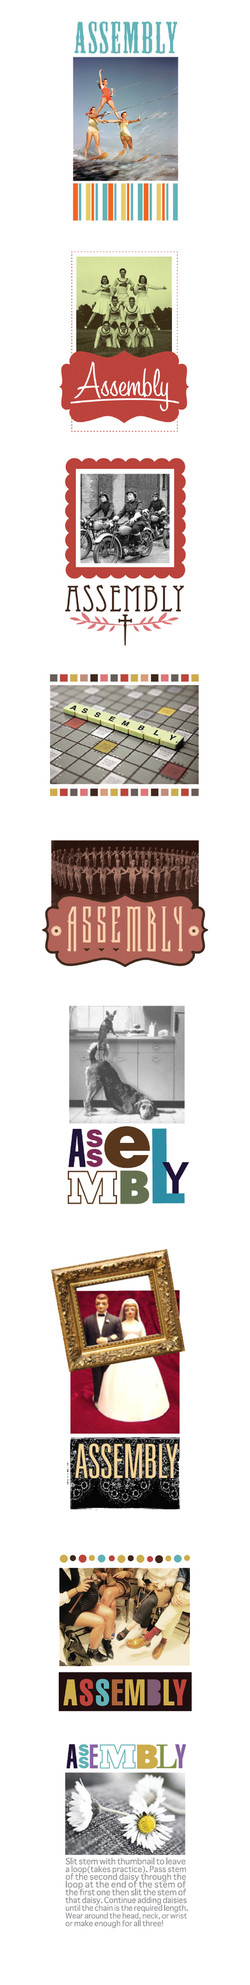 Assembly Concepts-01